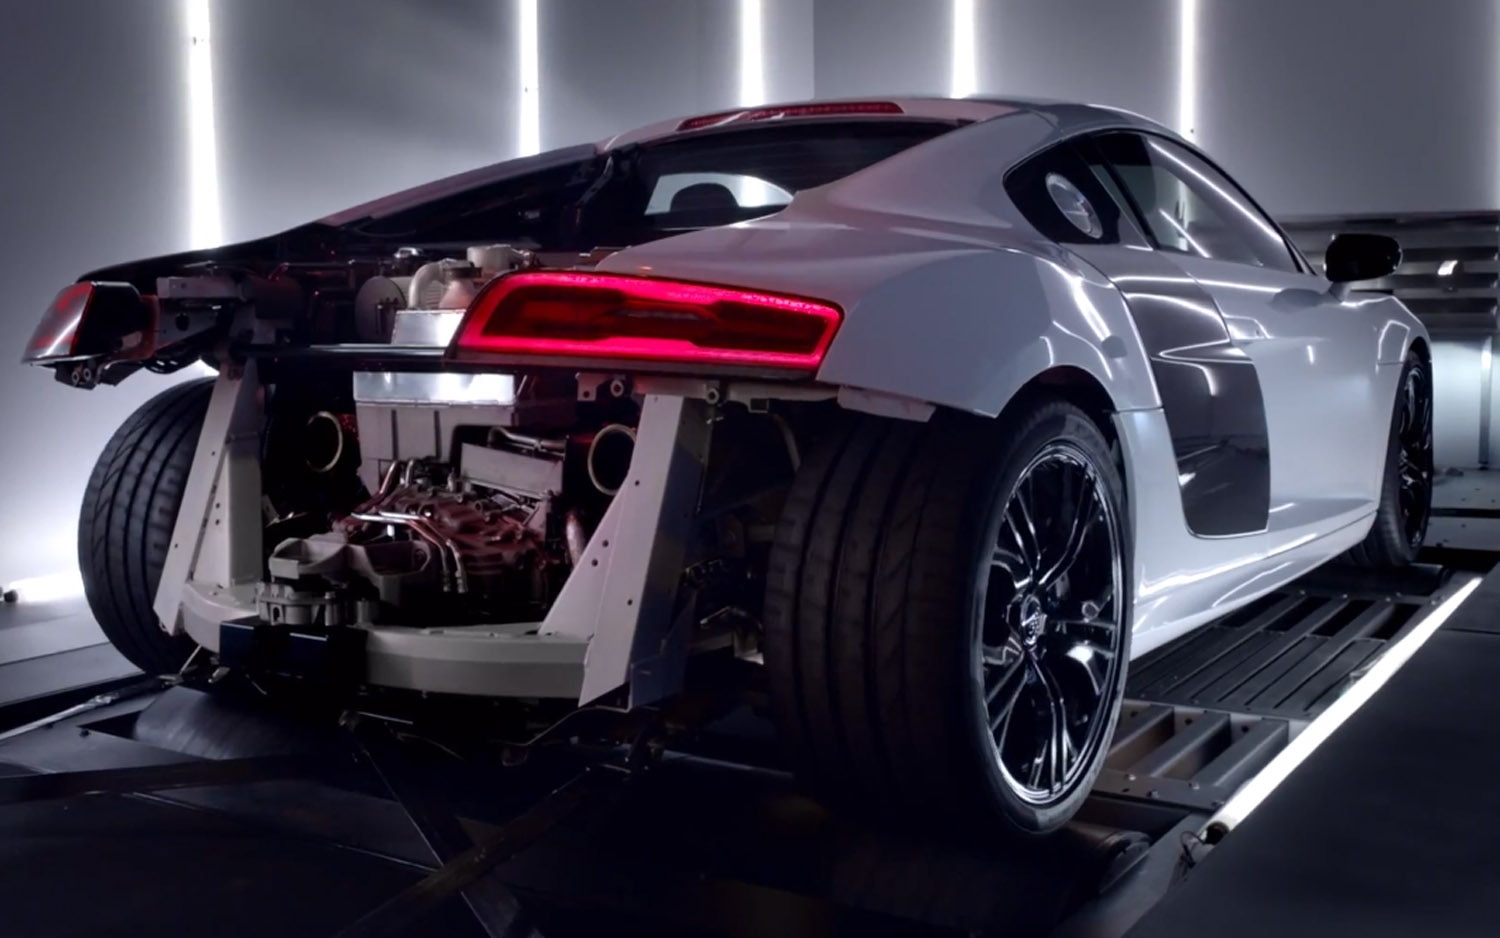 2014 Audi R8 V10 Plus Without Rear Clip Rear Three Quarter